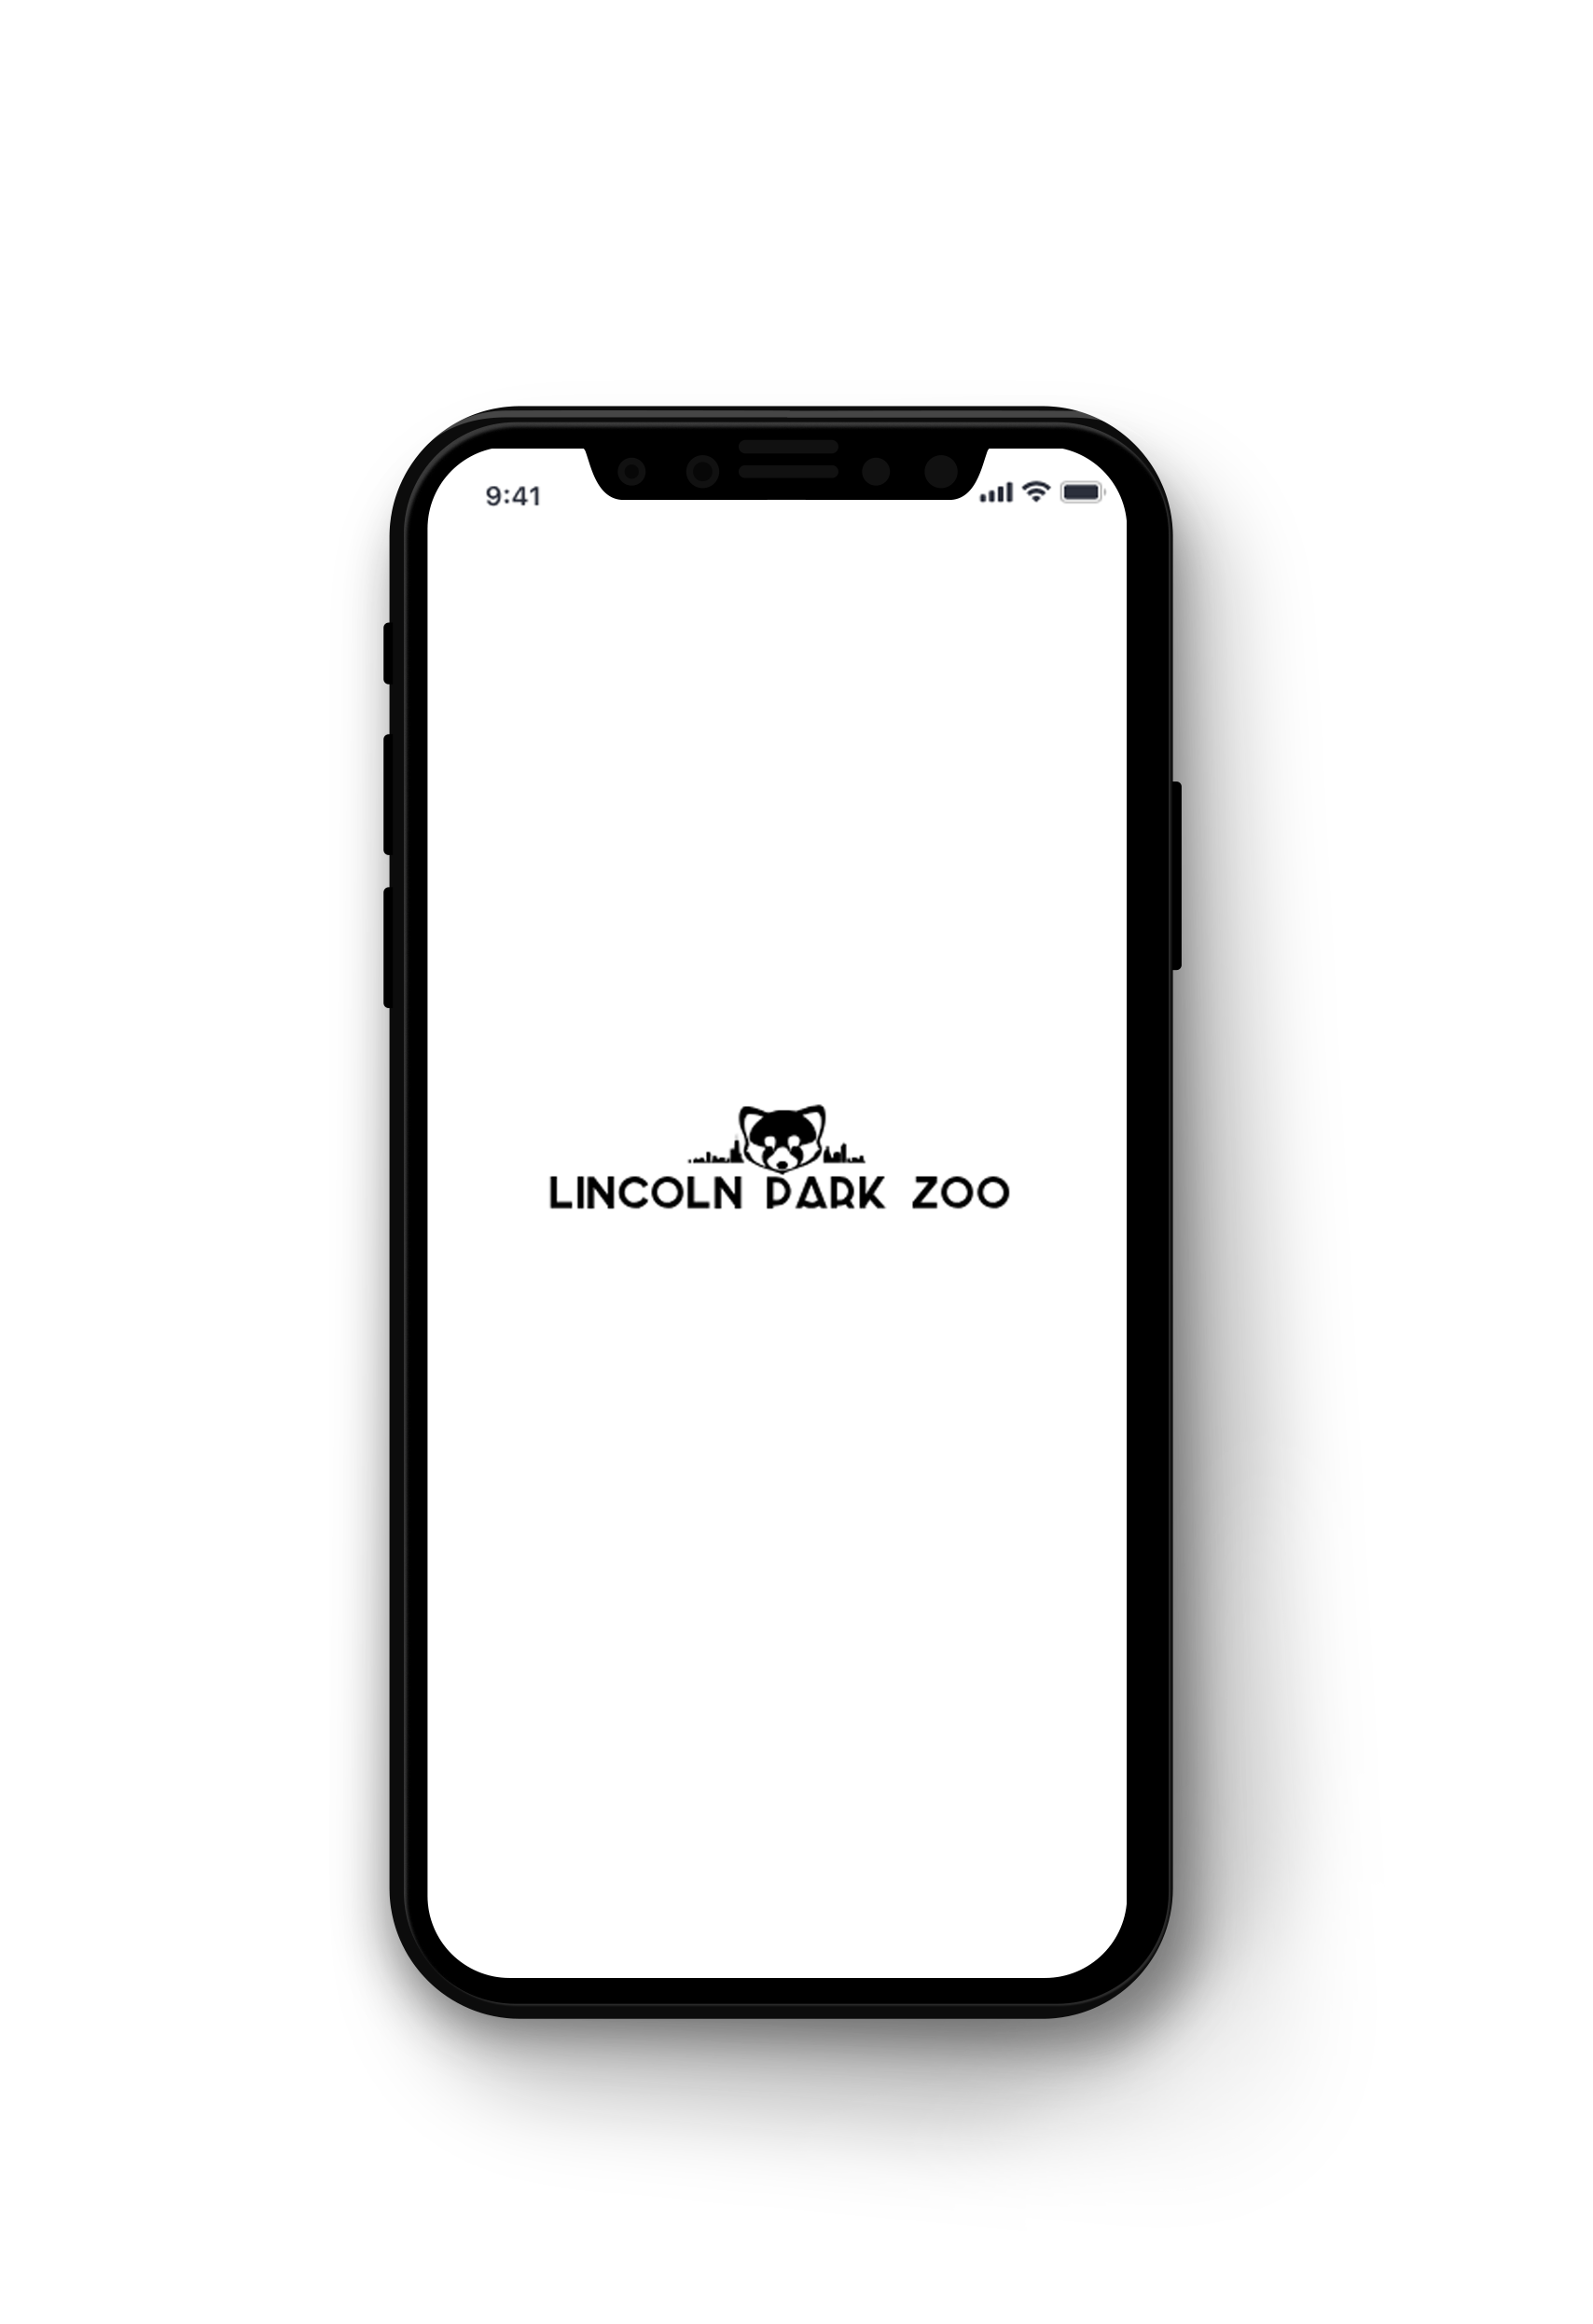 Lincoln Park Zoo Mobile - A zoo experience Redesigned.